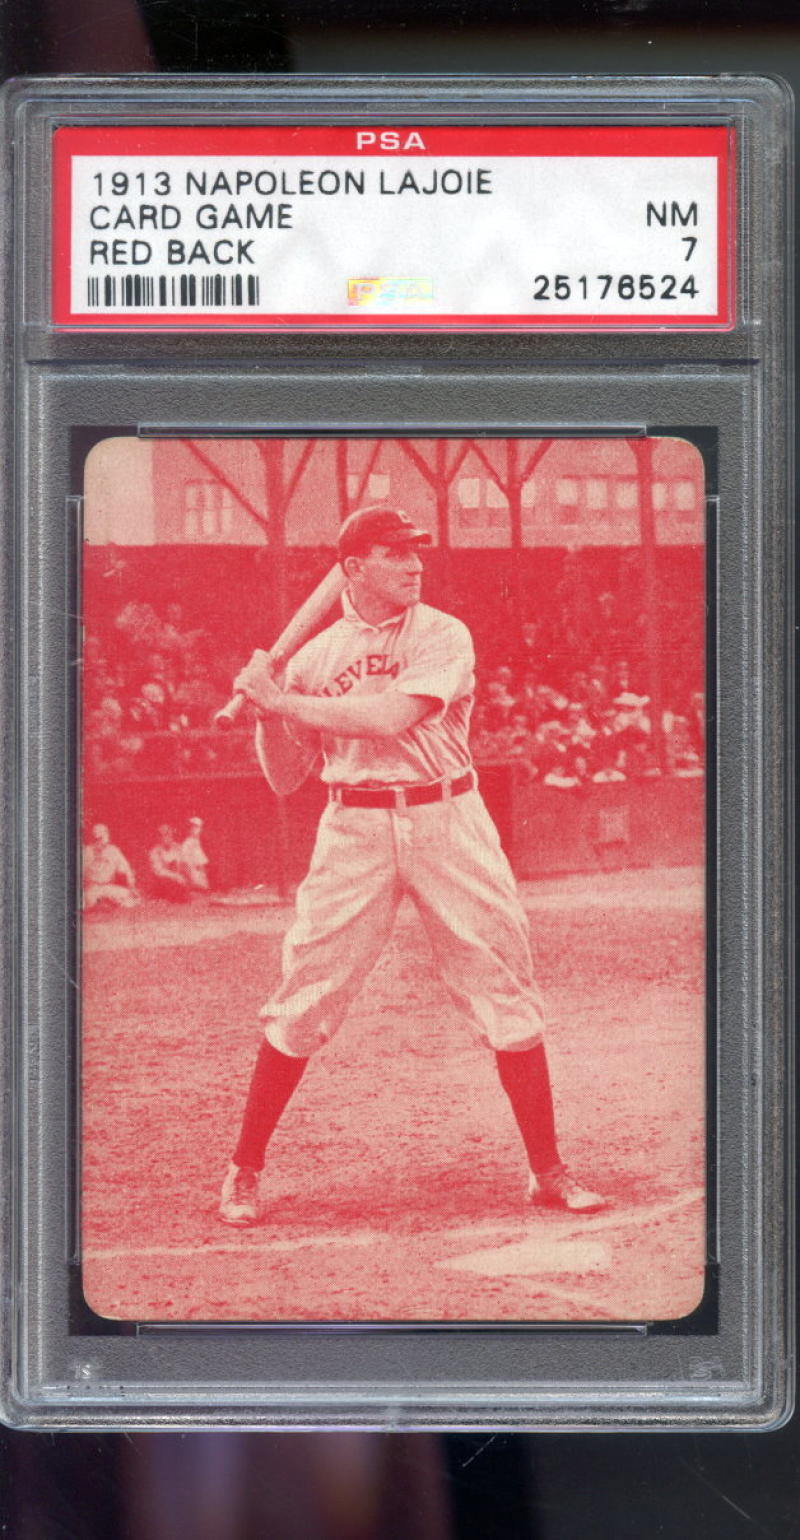 Details About 1913 Napoleon Lajoie Nap Game Red Back Nm Psa 7 Graded Baseball Card